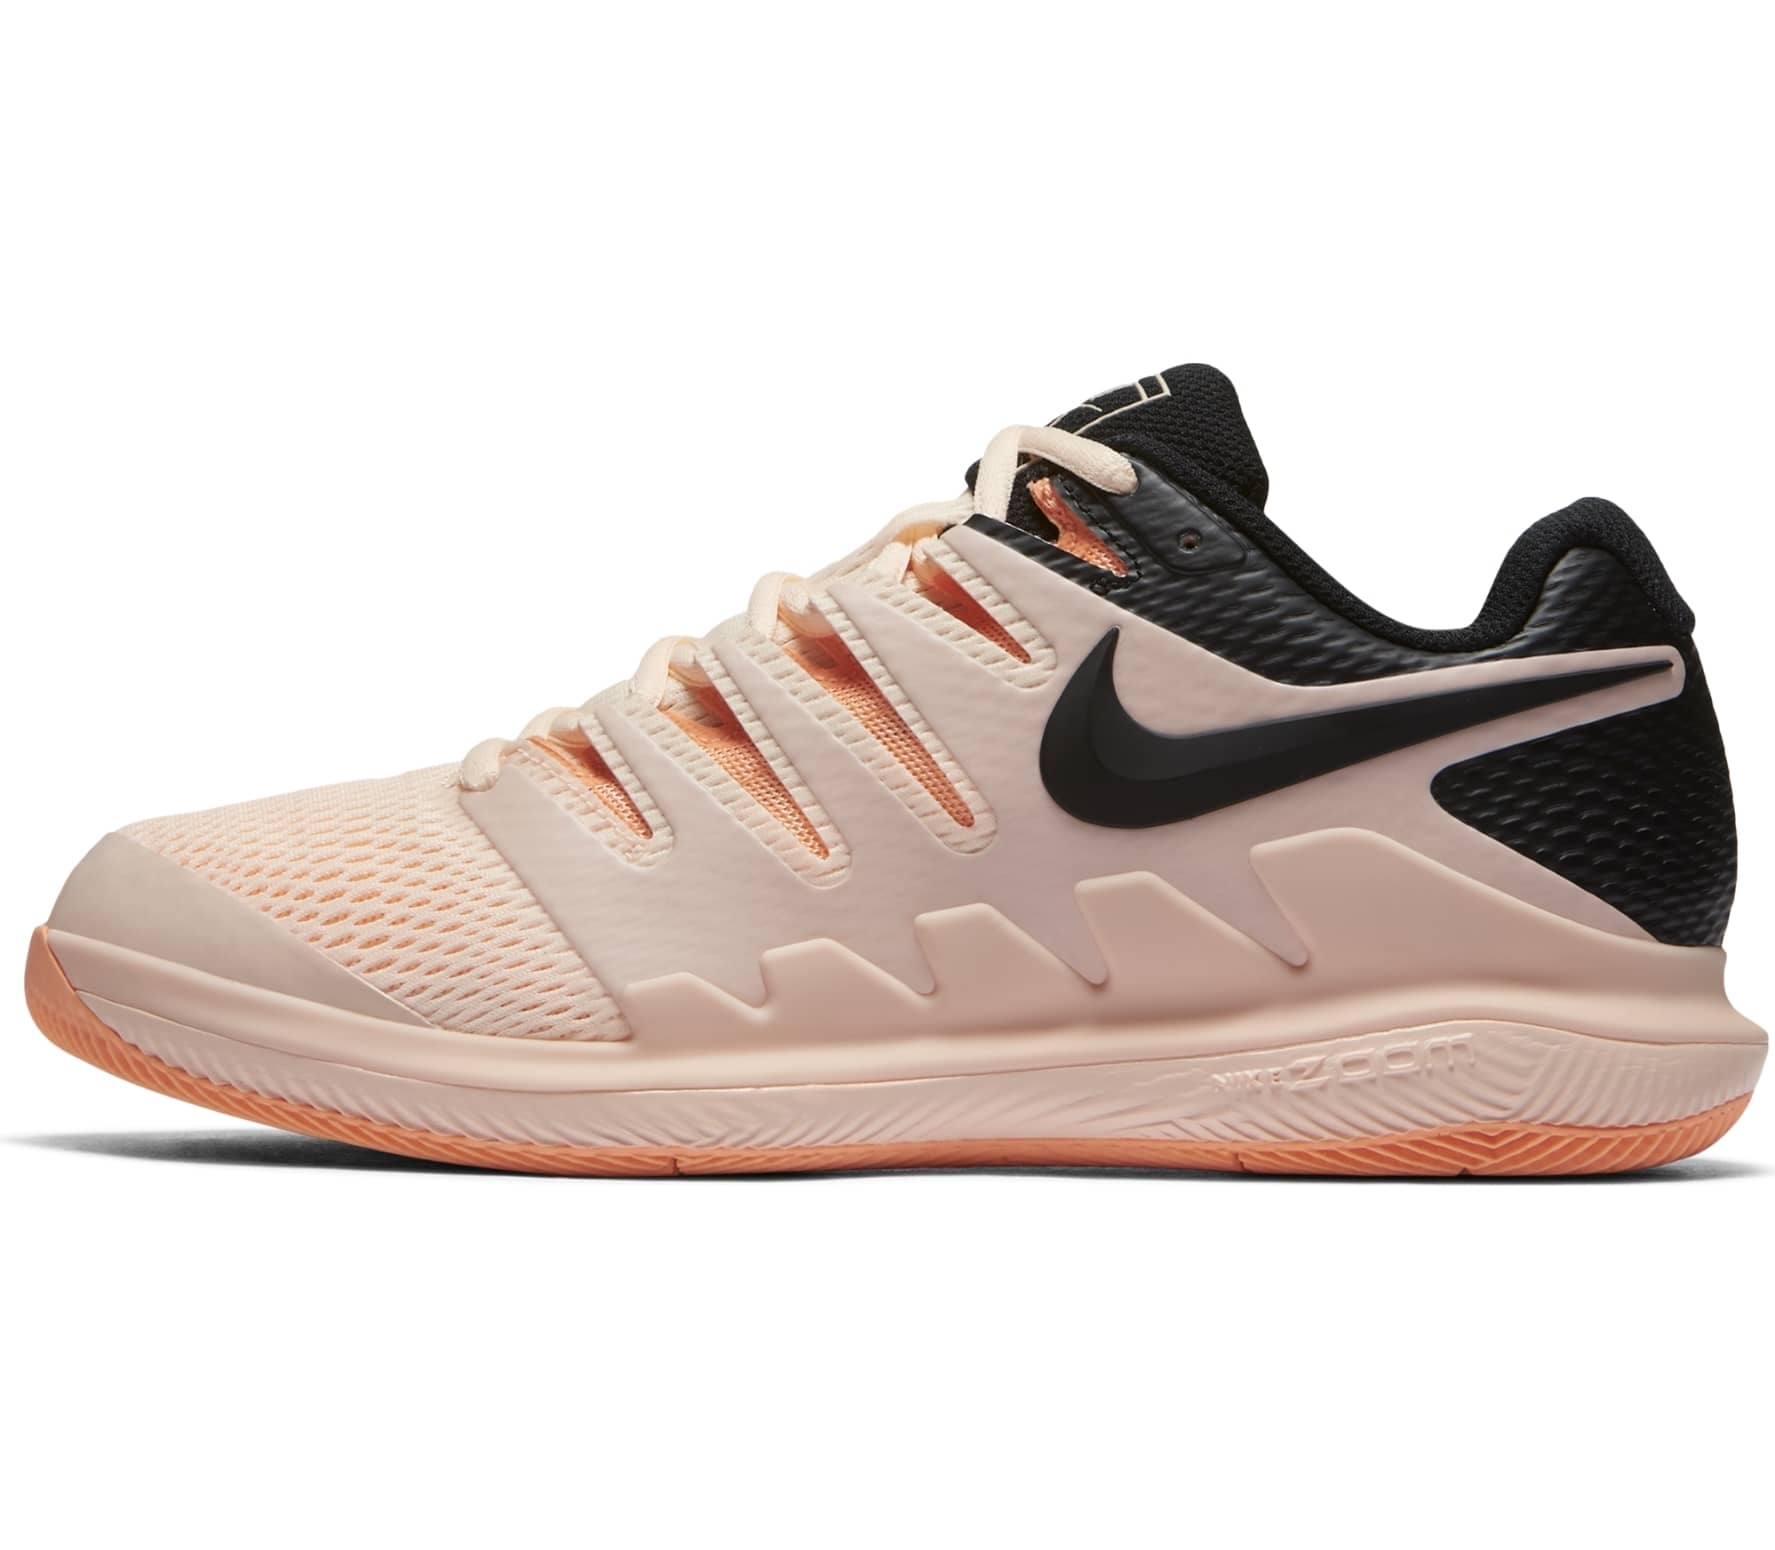 brand new ef9b0 510ec Nike - Air Zoom Vapor X women s tennis shoes (pink black)